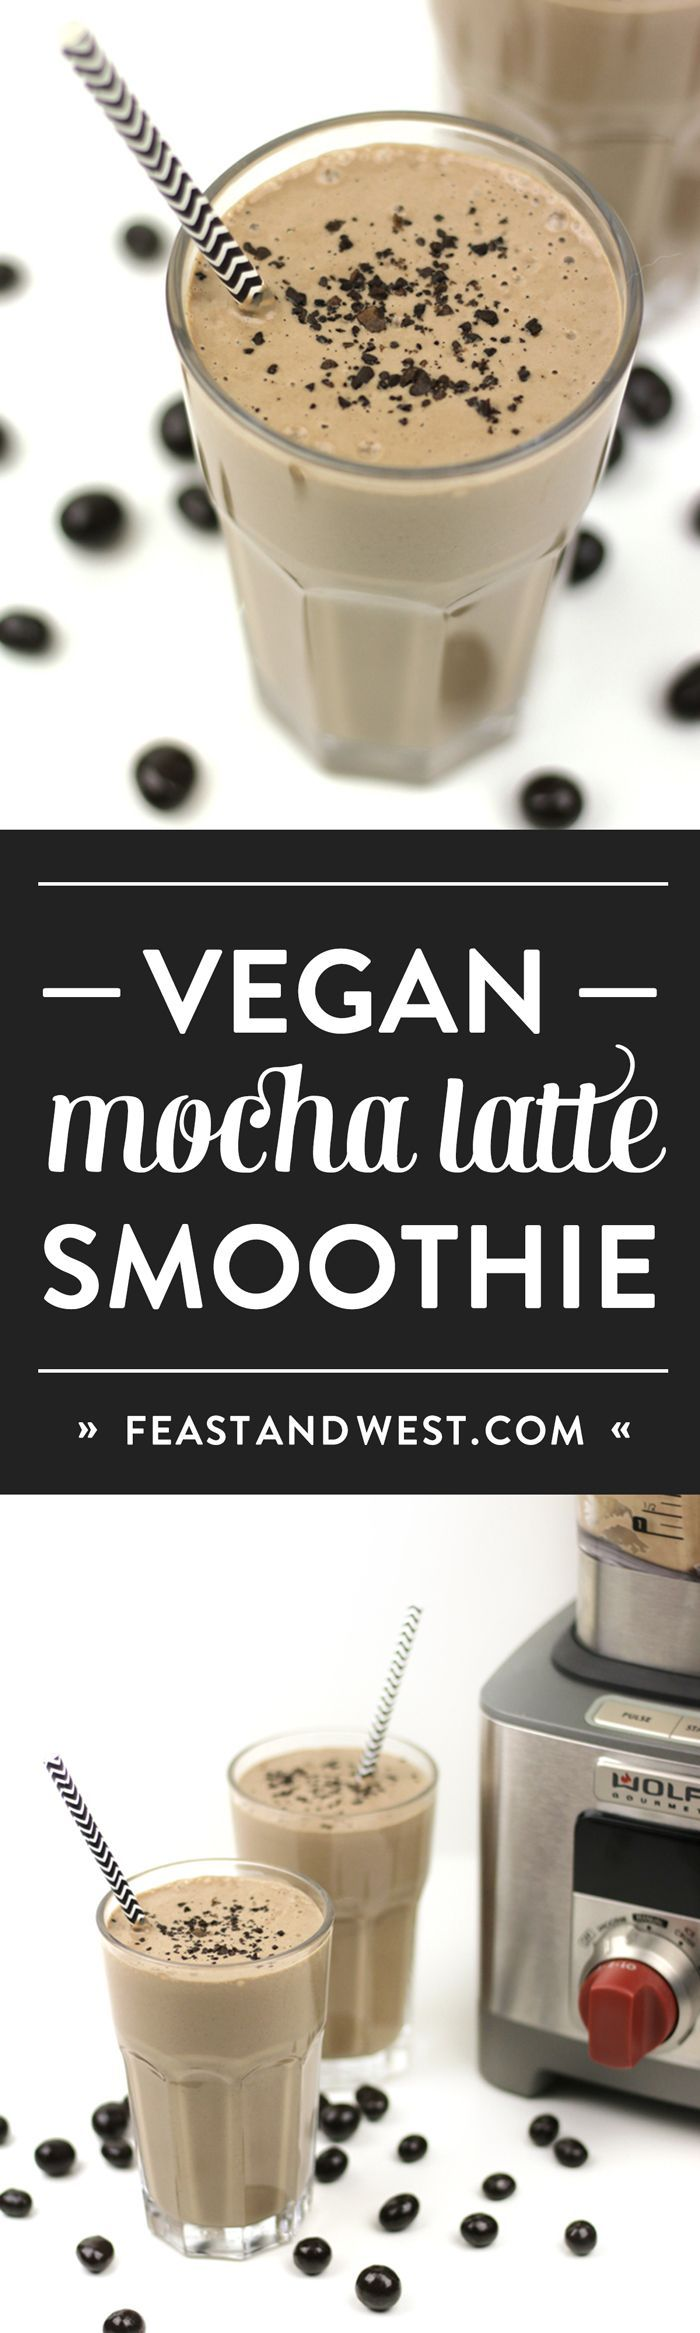 Vegan Mocha Latte Smoothies are a healthful way to begin the day. Packed with protein and nutrients from bananas, peanut butter, non-dairy yogurt, almond milk, chia seeds and tofu, this smoothie's got a bit of caffeine from real cocoa and coffee or espresso to boot. This is a blender breakfast that'll boost your morning right. (via http://feastandwest.com)